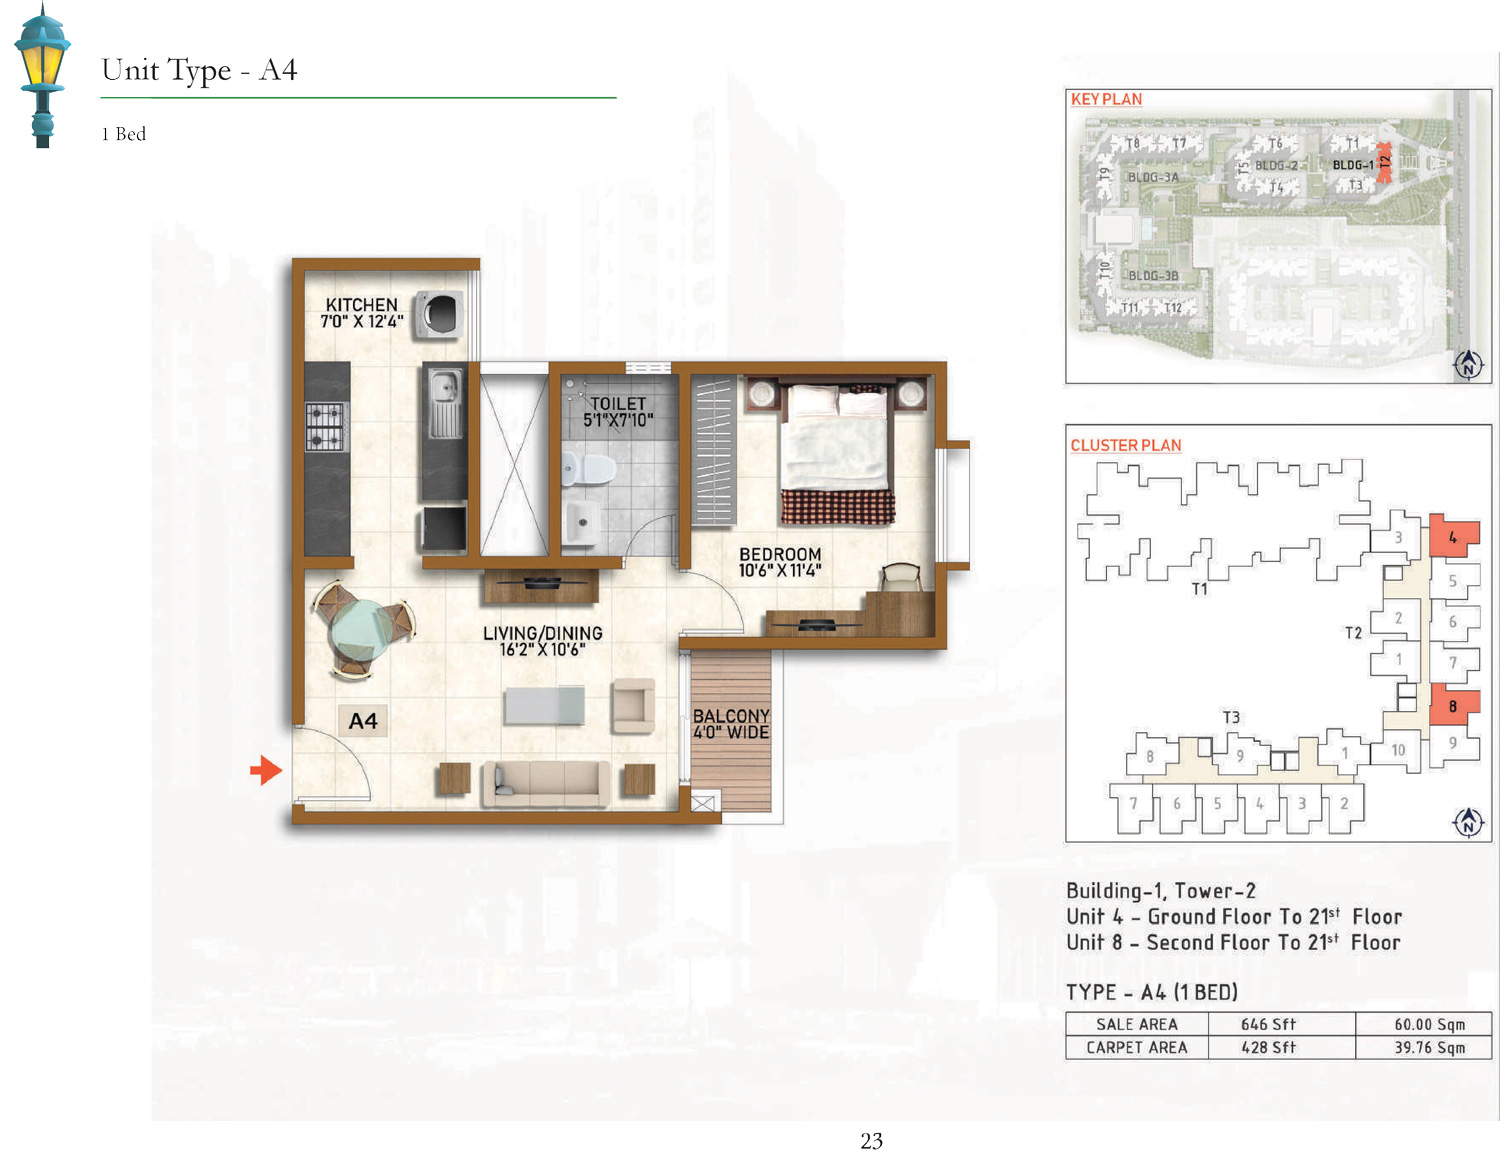 Type A4 - 646 Sq Ft